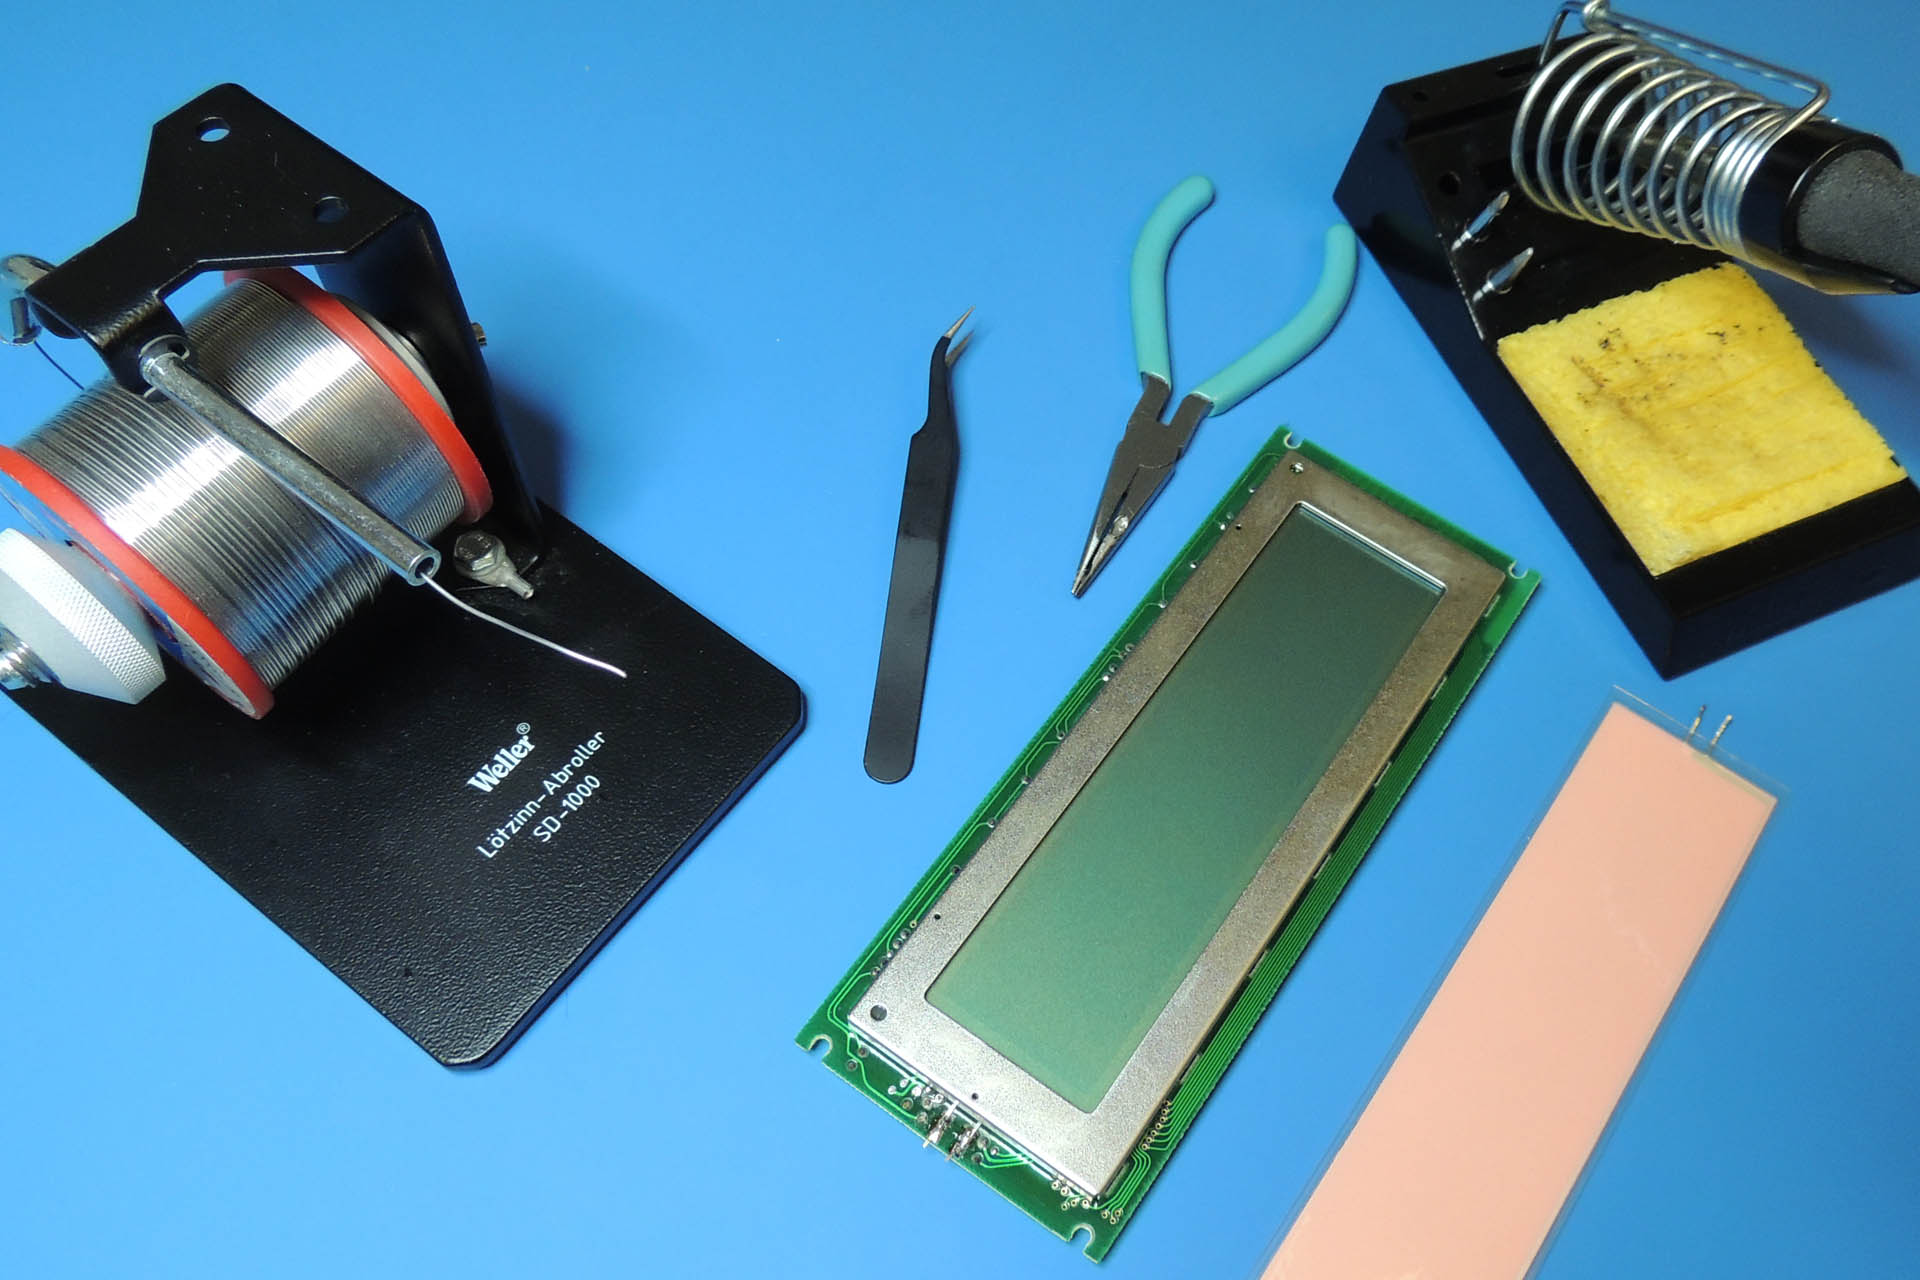 LCD Backlight Replacement at Plasma Music